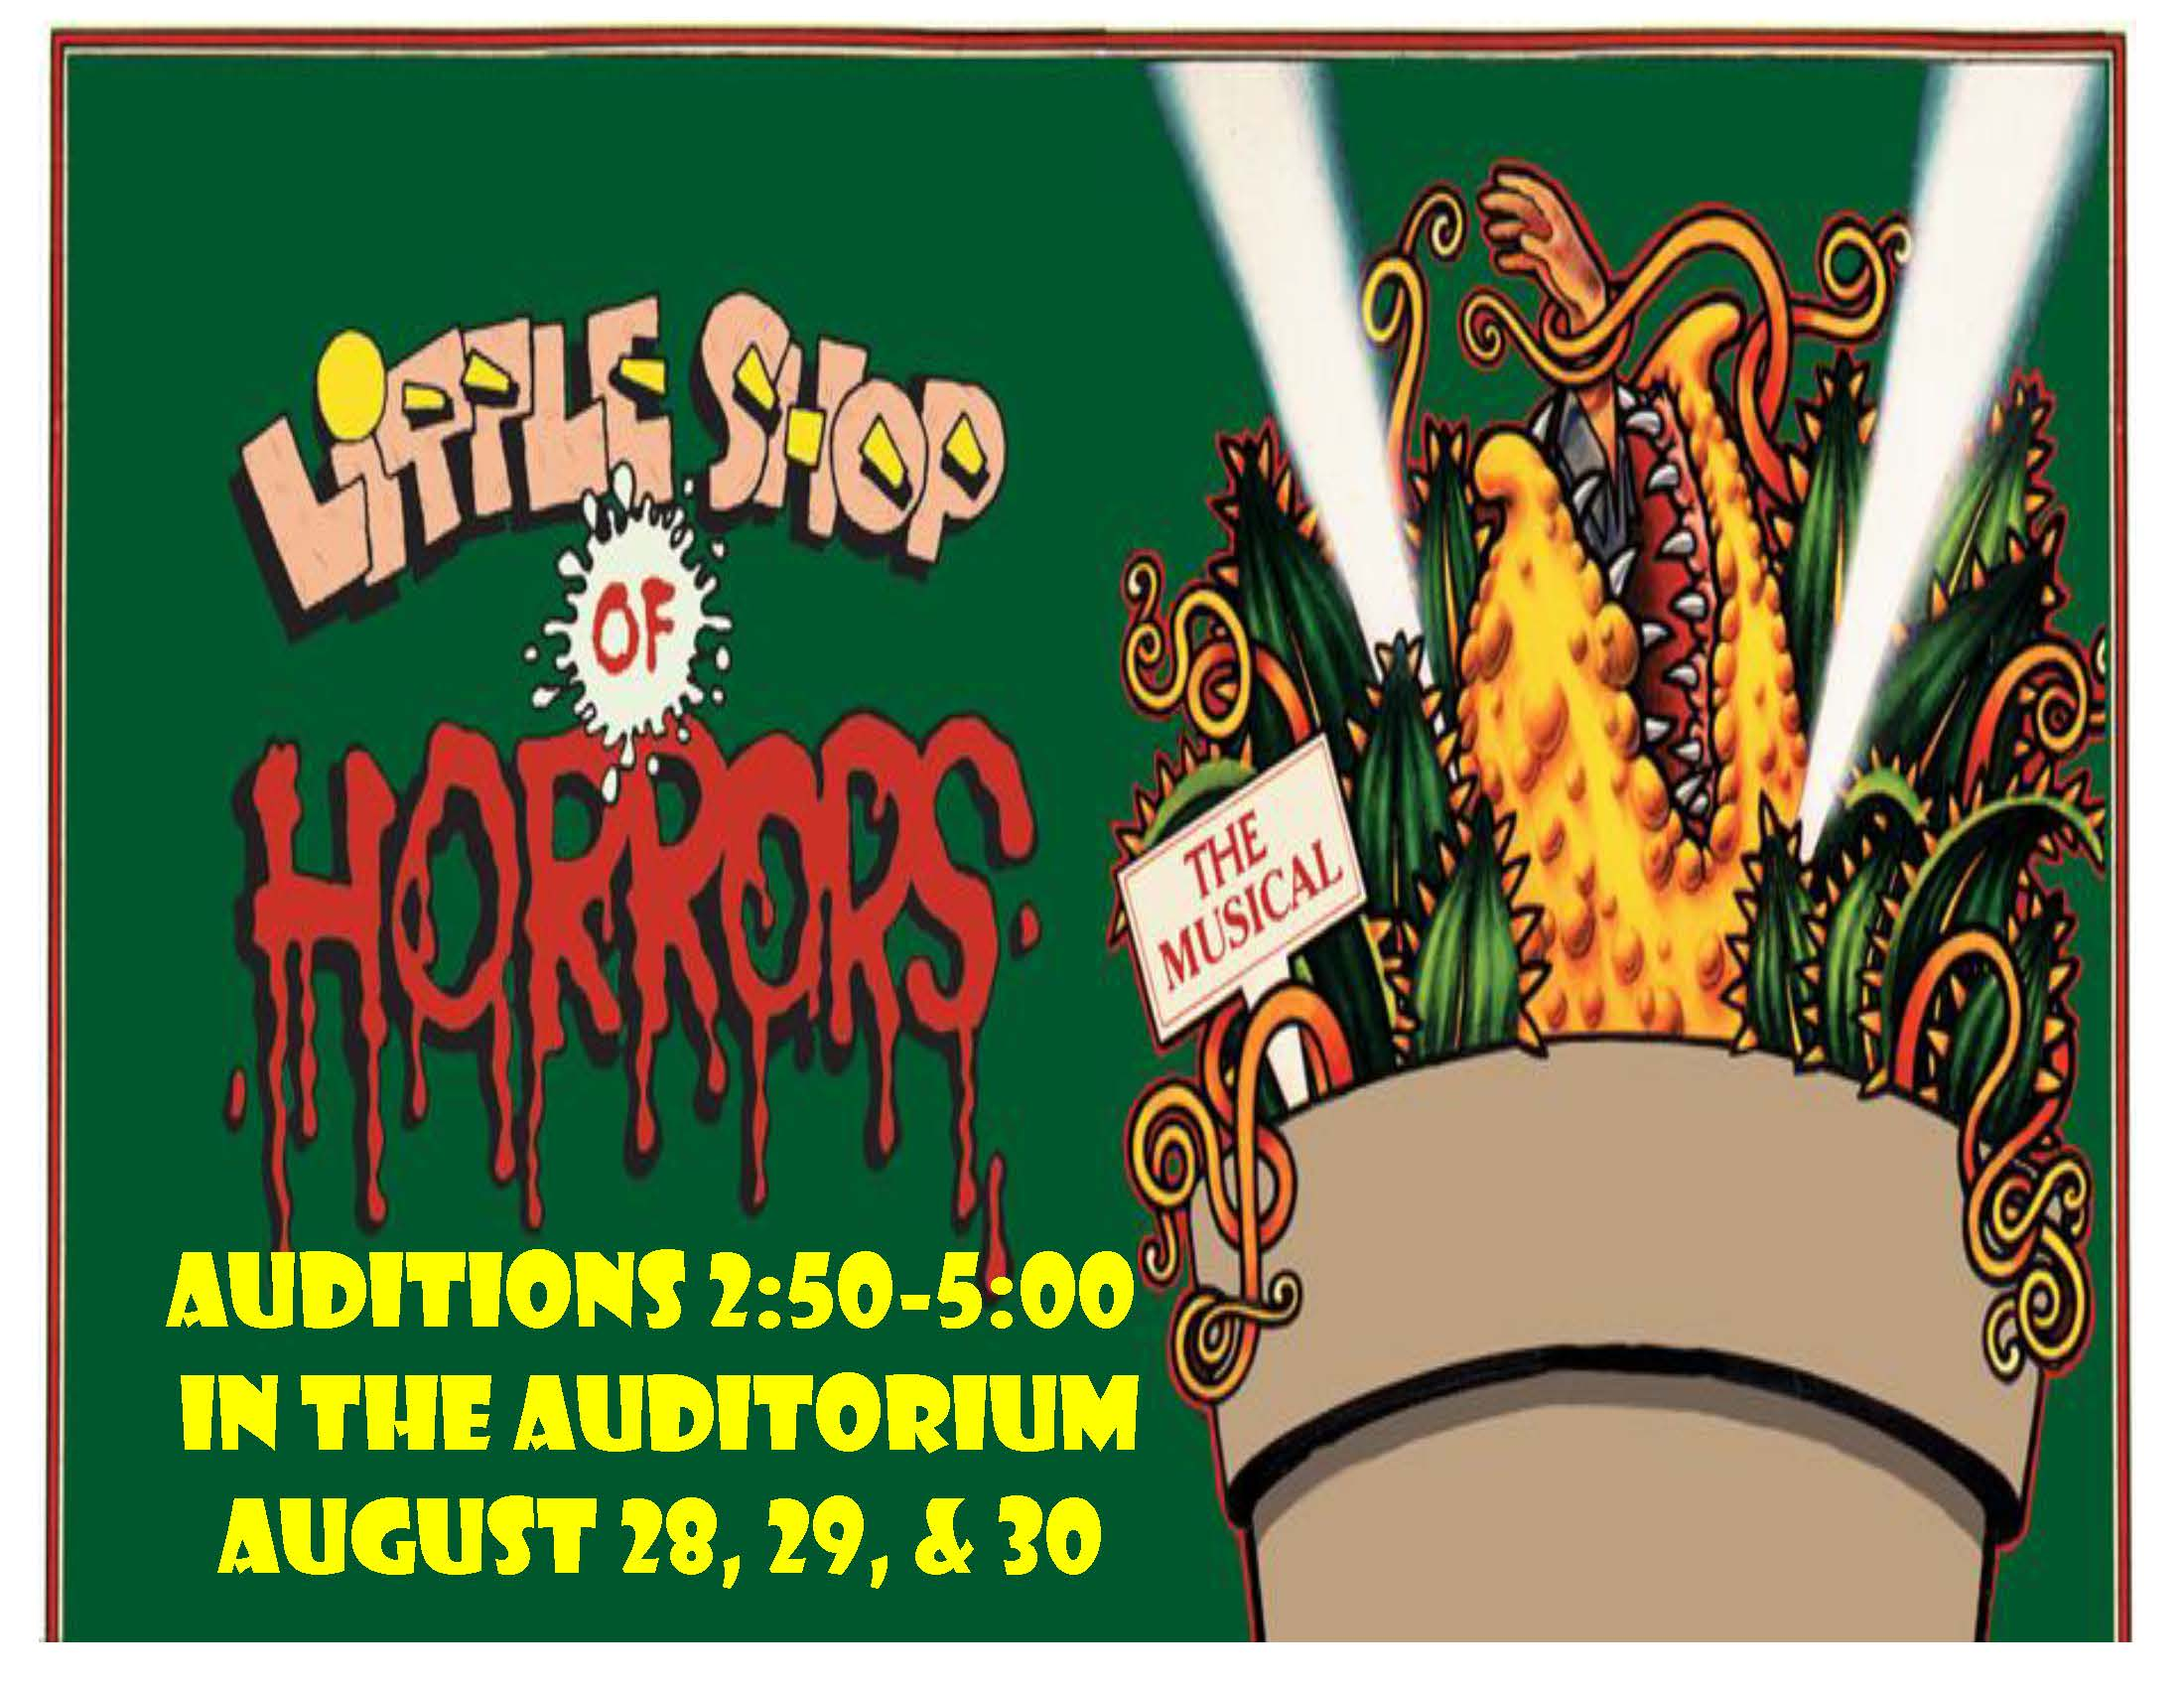 Little Shop of Horrors Auditions!